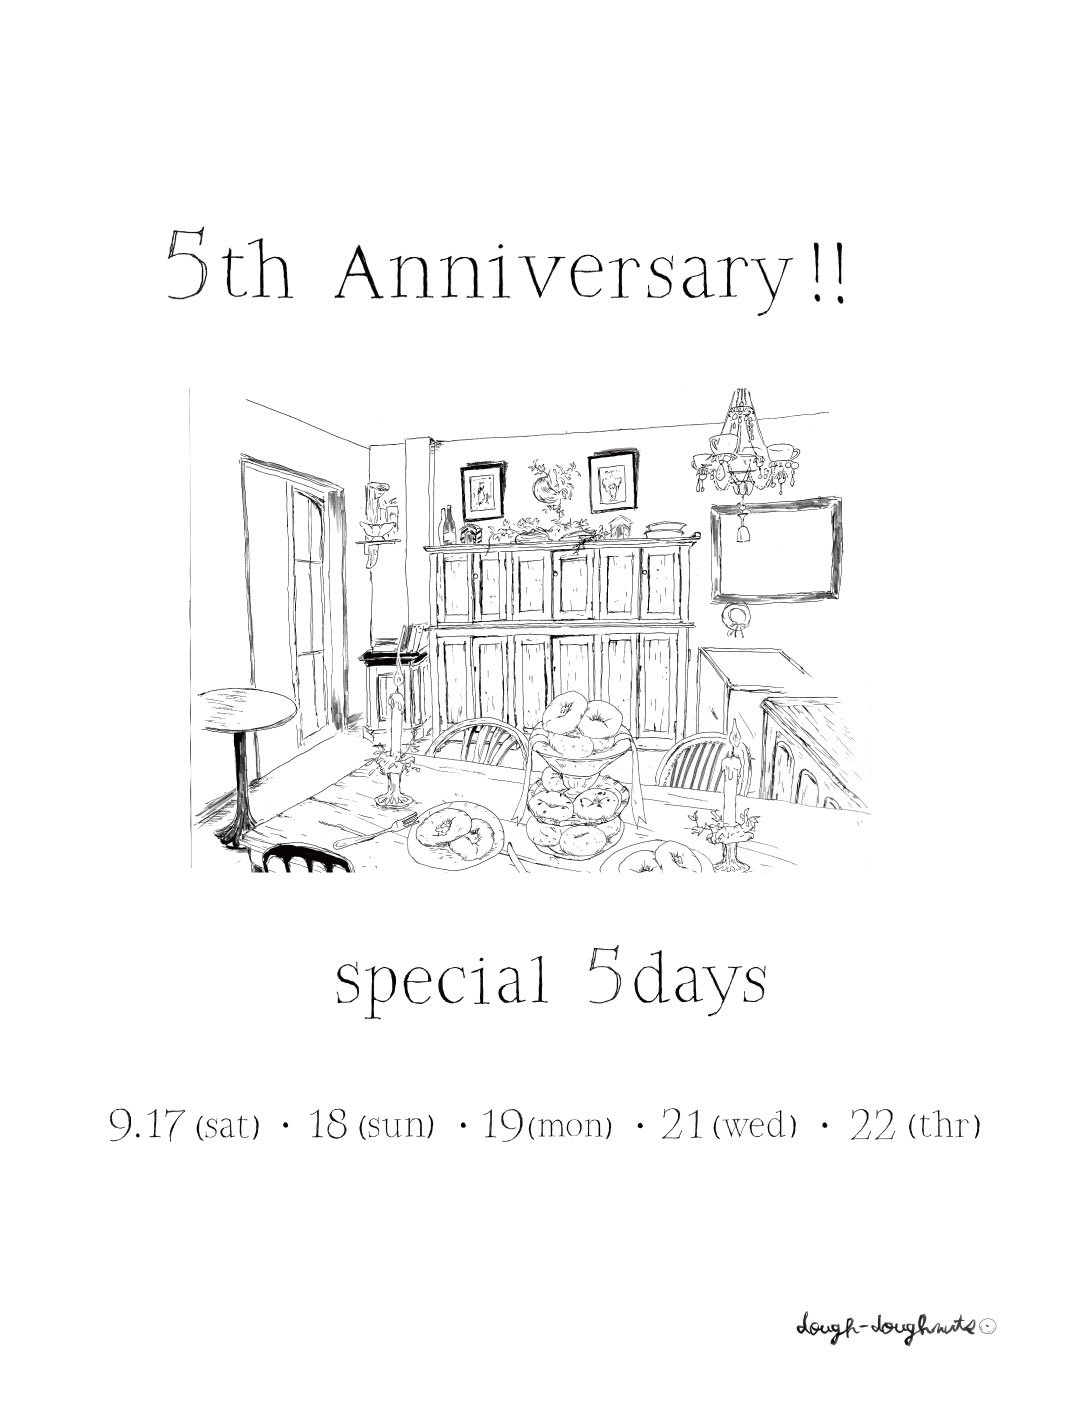 5th Anniversary! special 5days!!!  ドーナツメニュー。_a0221457_15410788.jpg